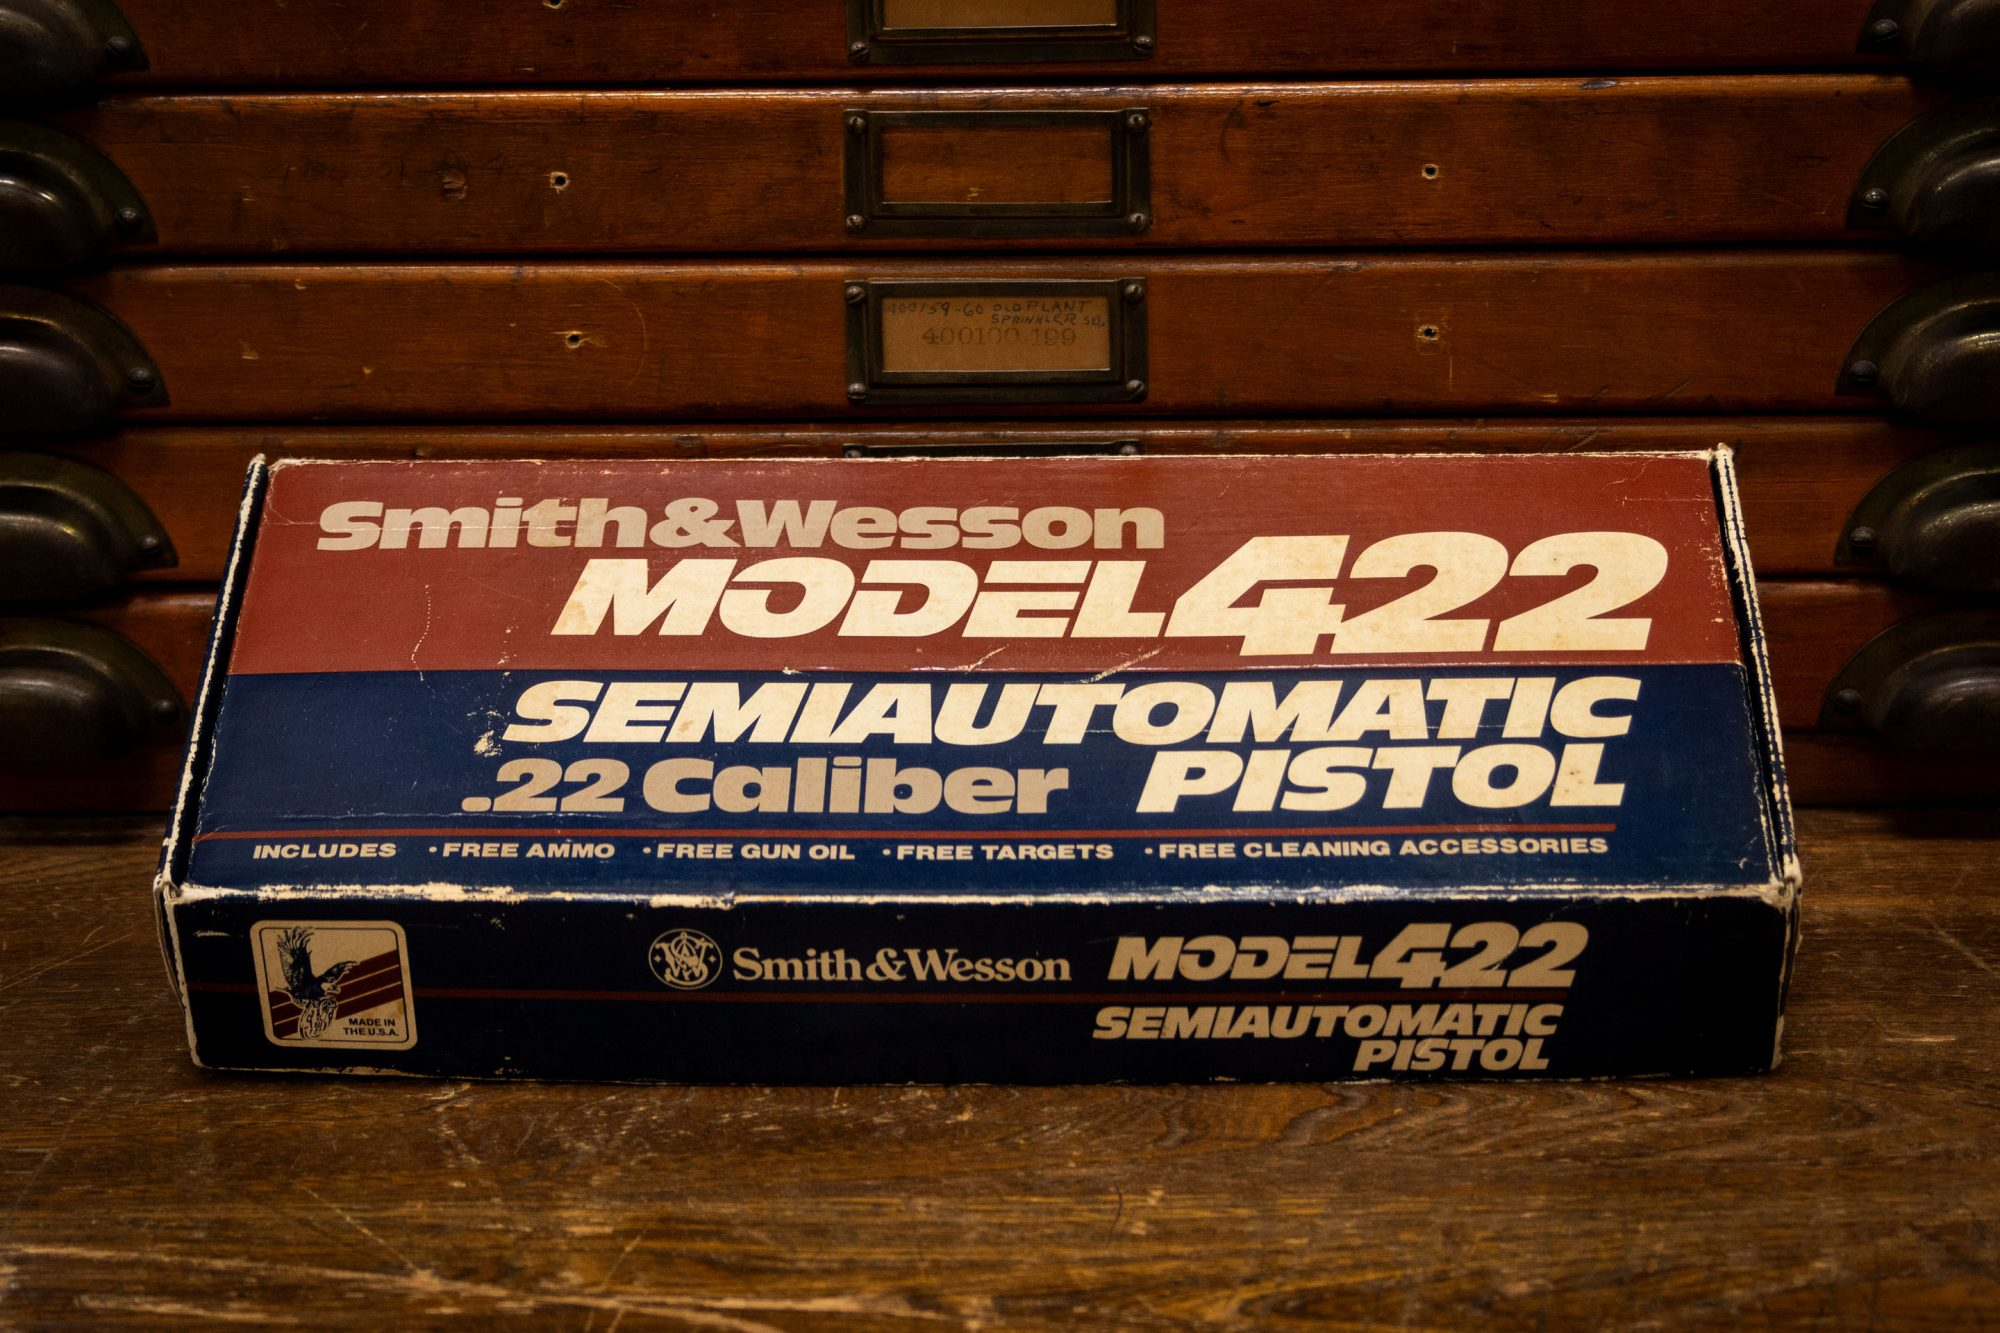 Photo of the original box for a pre-owned Smith & Wesson Model 422, for sale by Turnbull Restoration of Bloomfield, NY